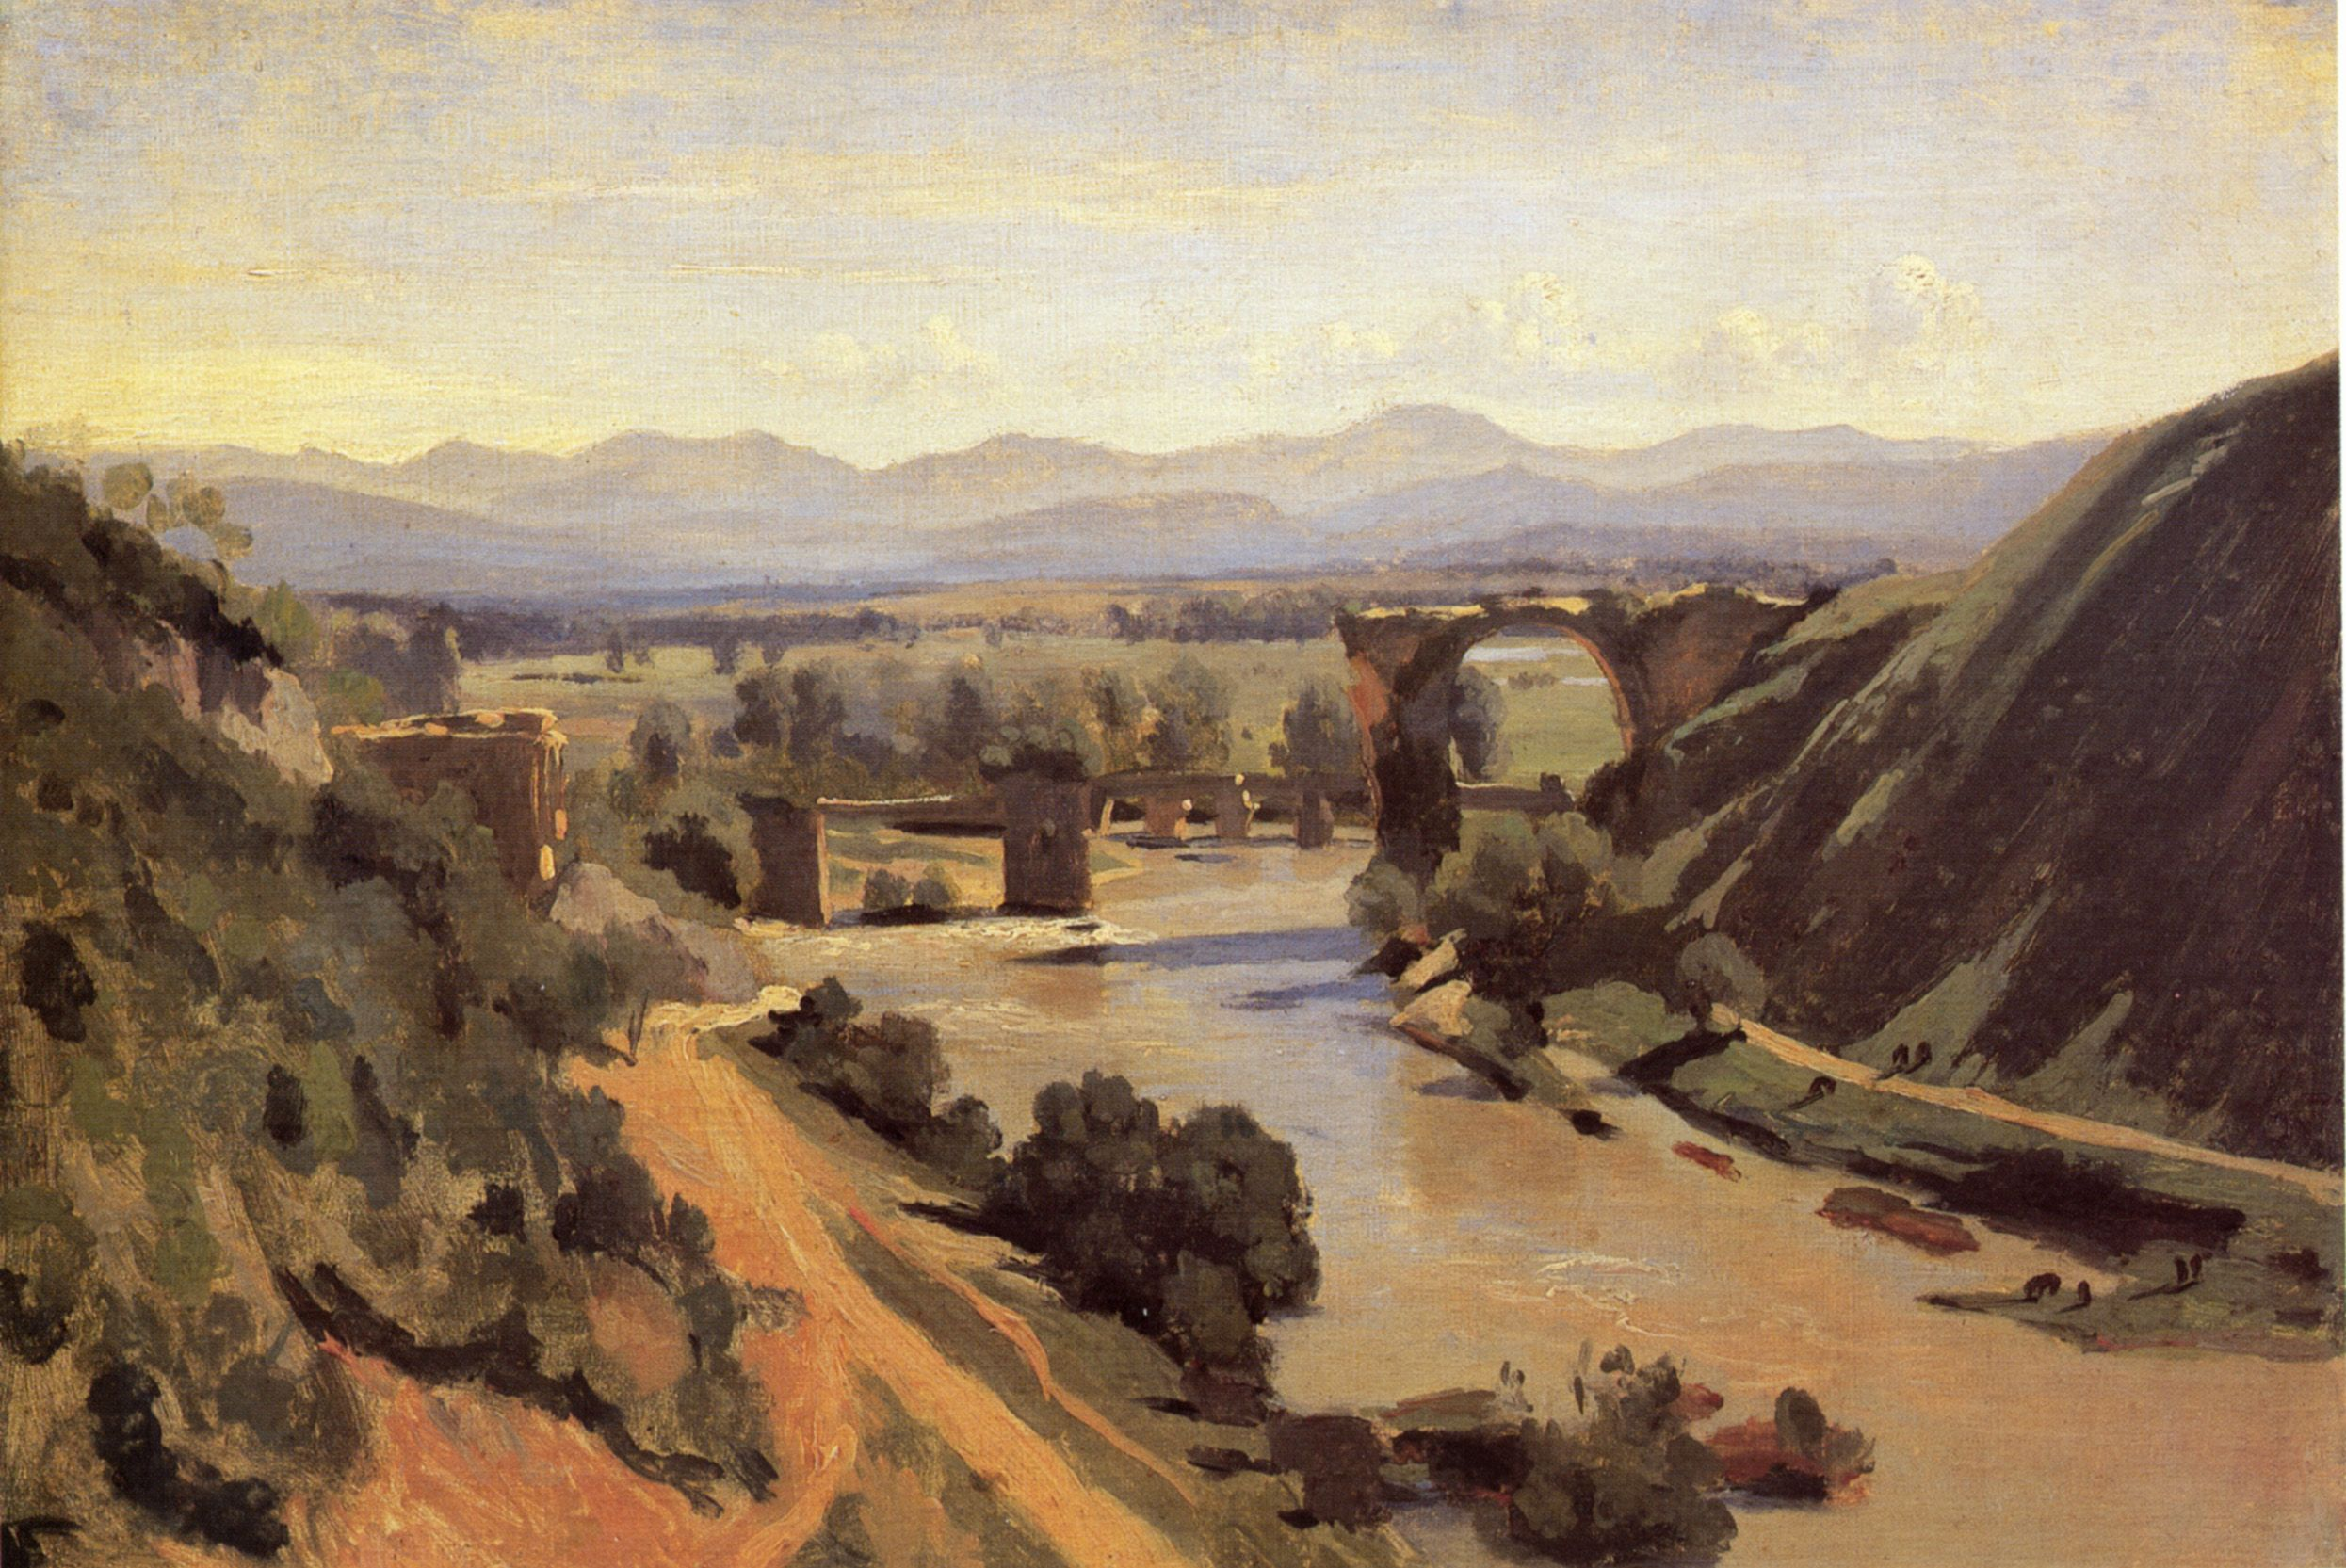 The Bridge at Narni, Jean-Baptiste Camille Corot, 1826. Museo del Louvre, Parigi